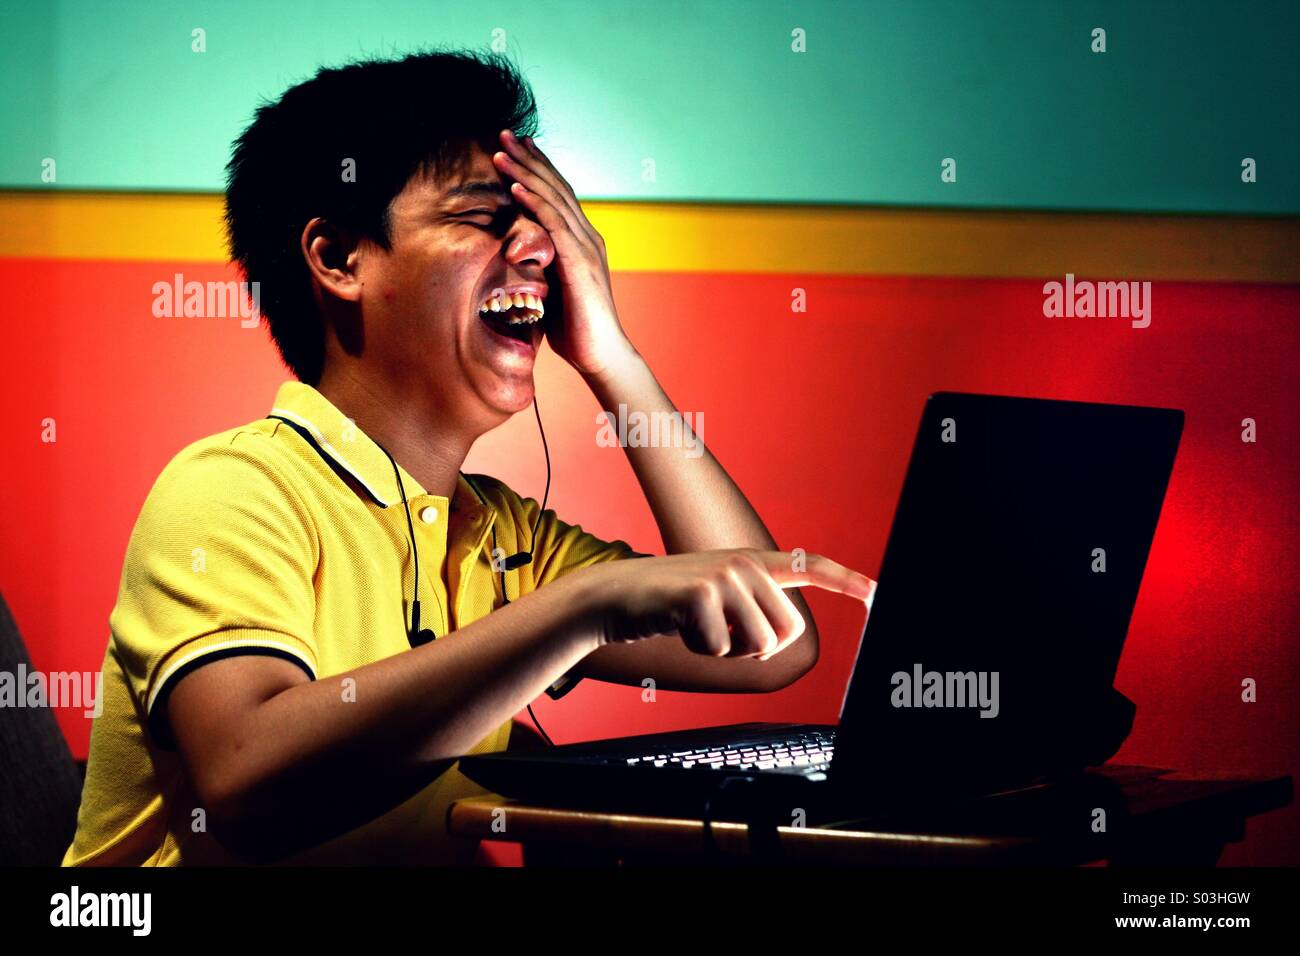 Asian teenager boy working or studying on a laptop computer and laughing hard - Stock Image